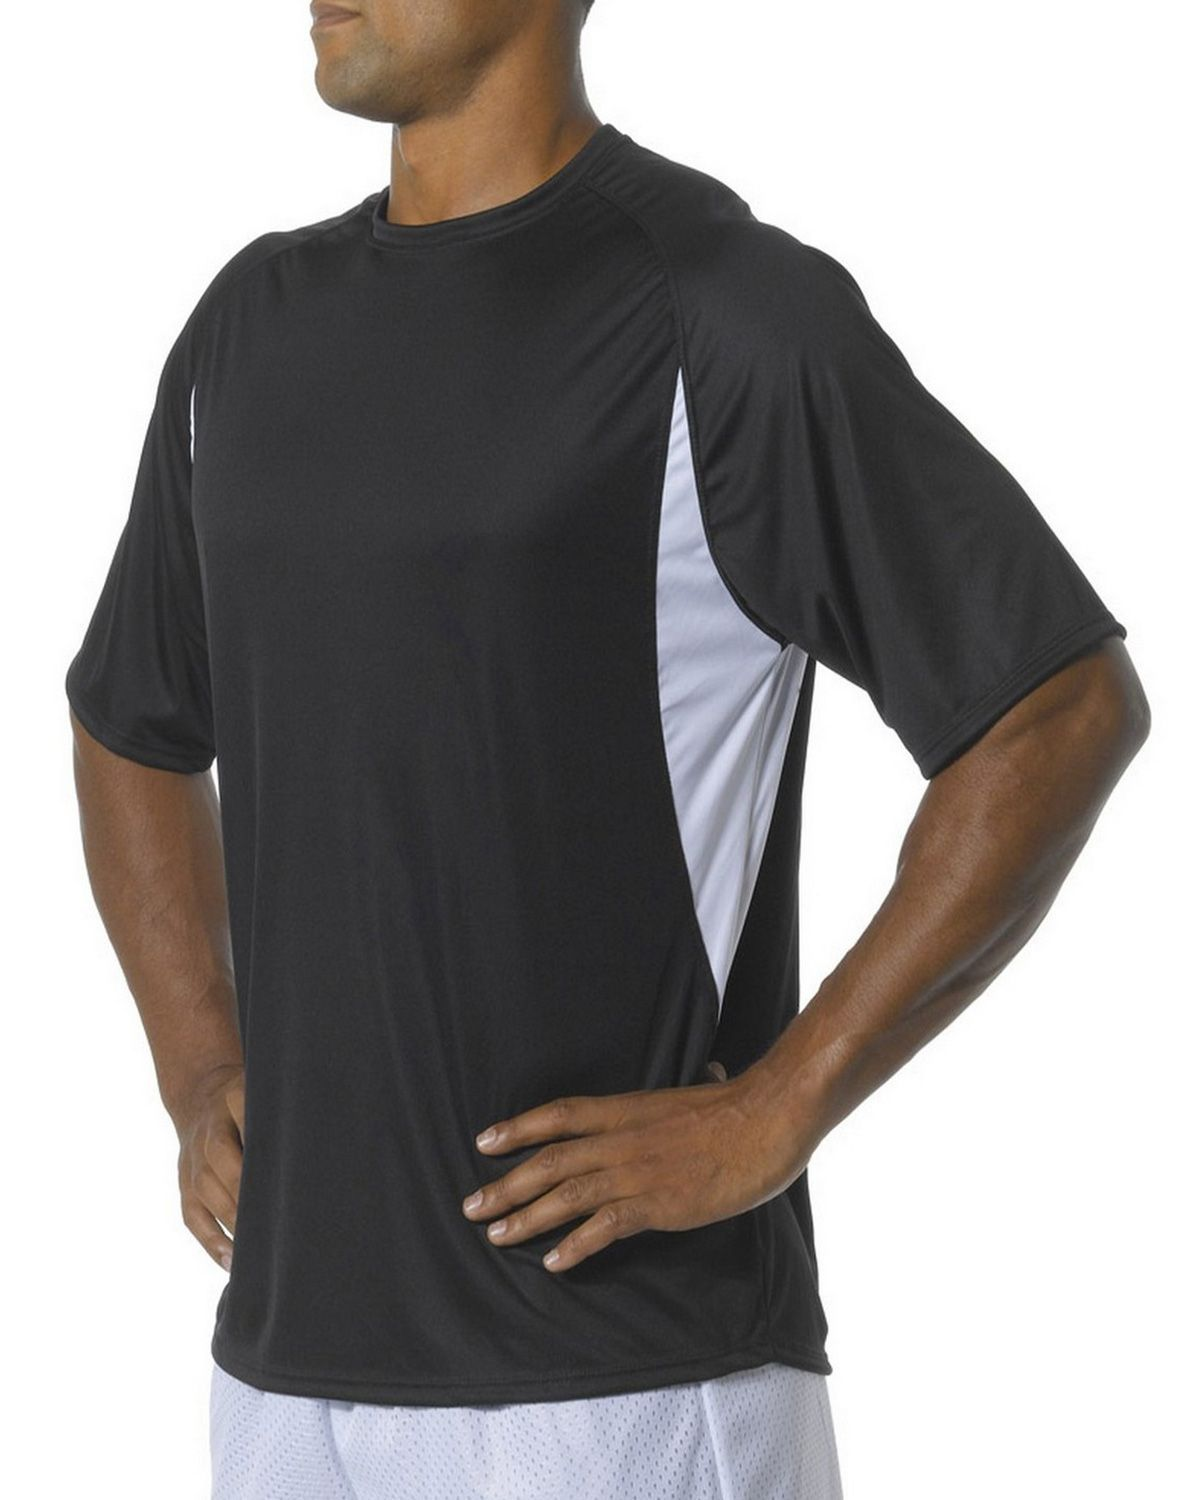 A4 N3181 Men's Cooling Performance Color Block Tee